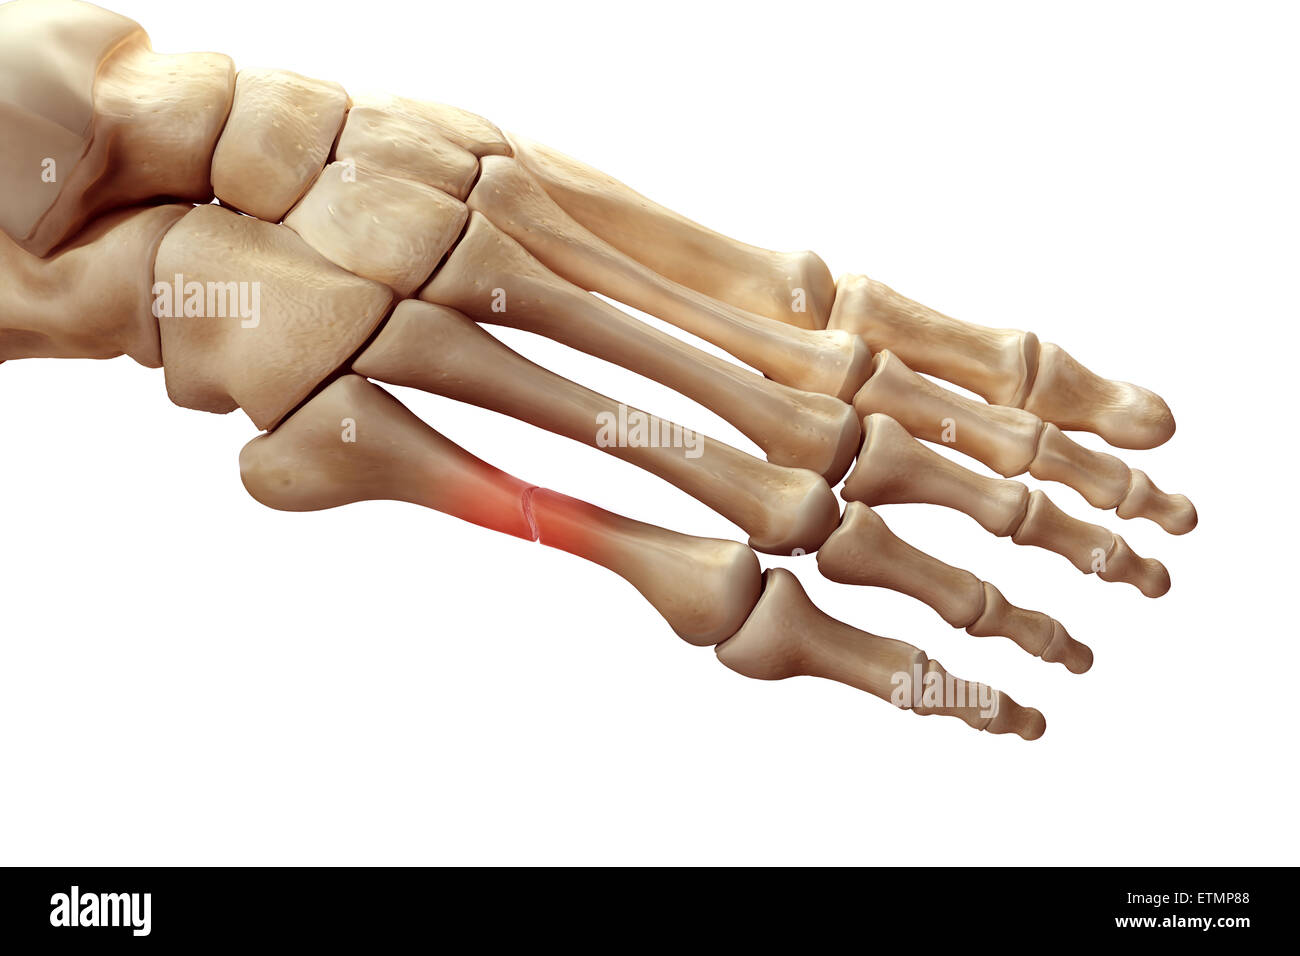 Illustration showing the bones of the foot with a break in a metatarsal highlighted. - Stock Image